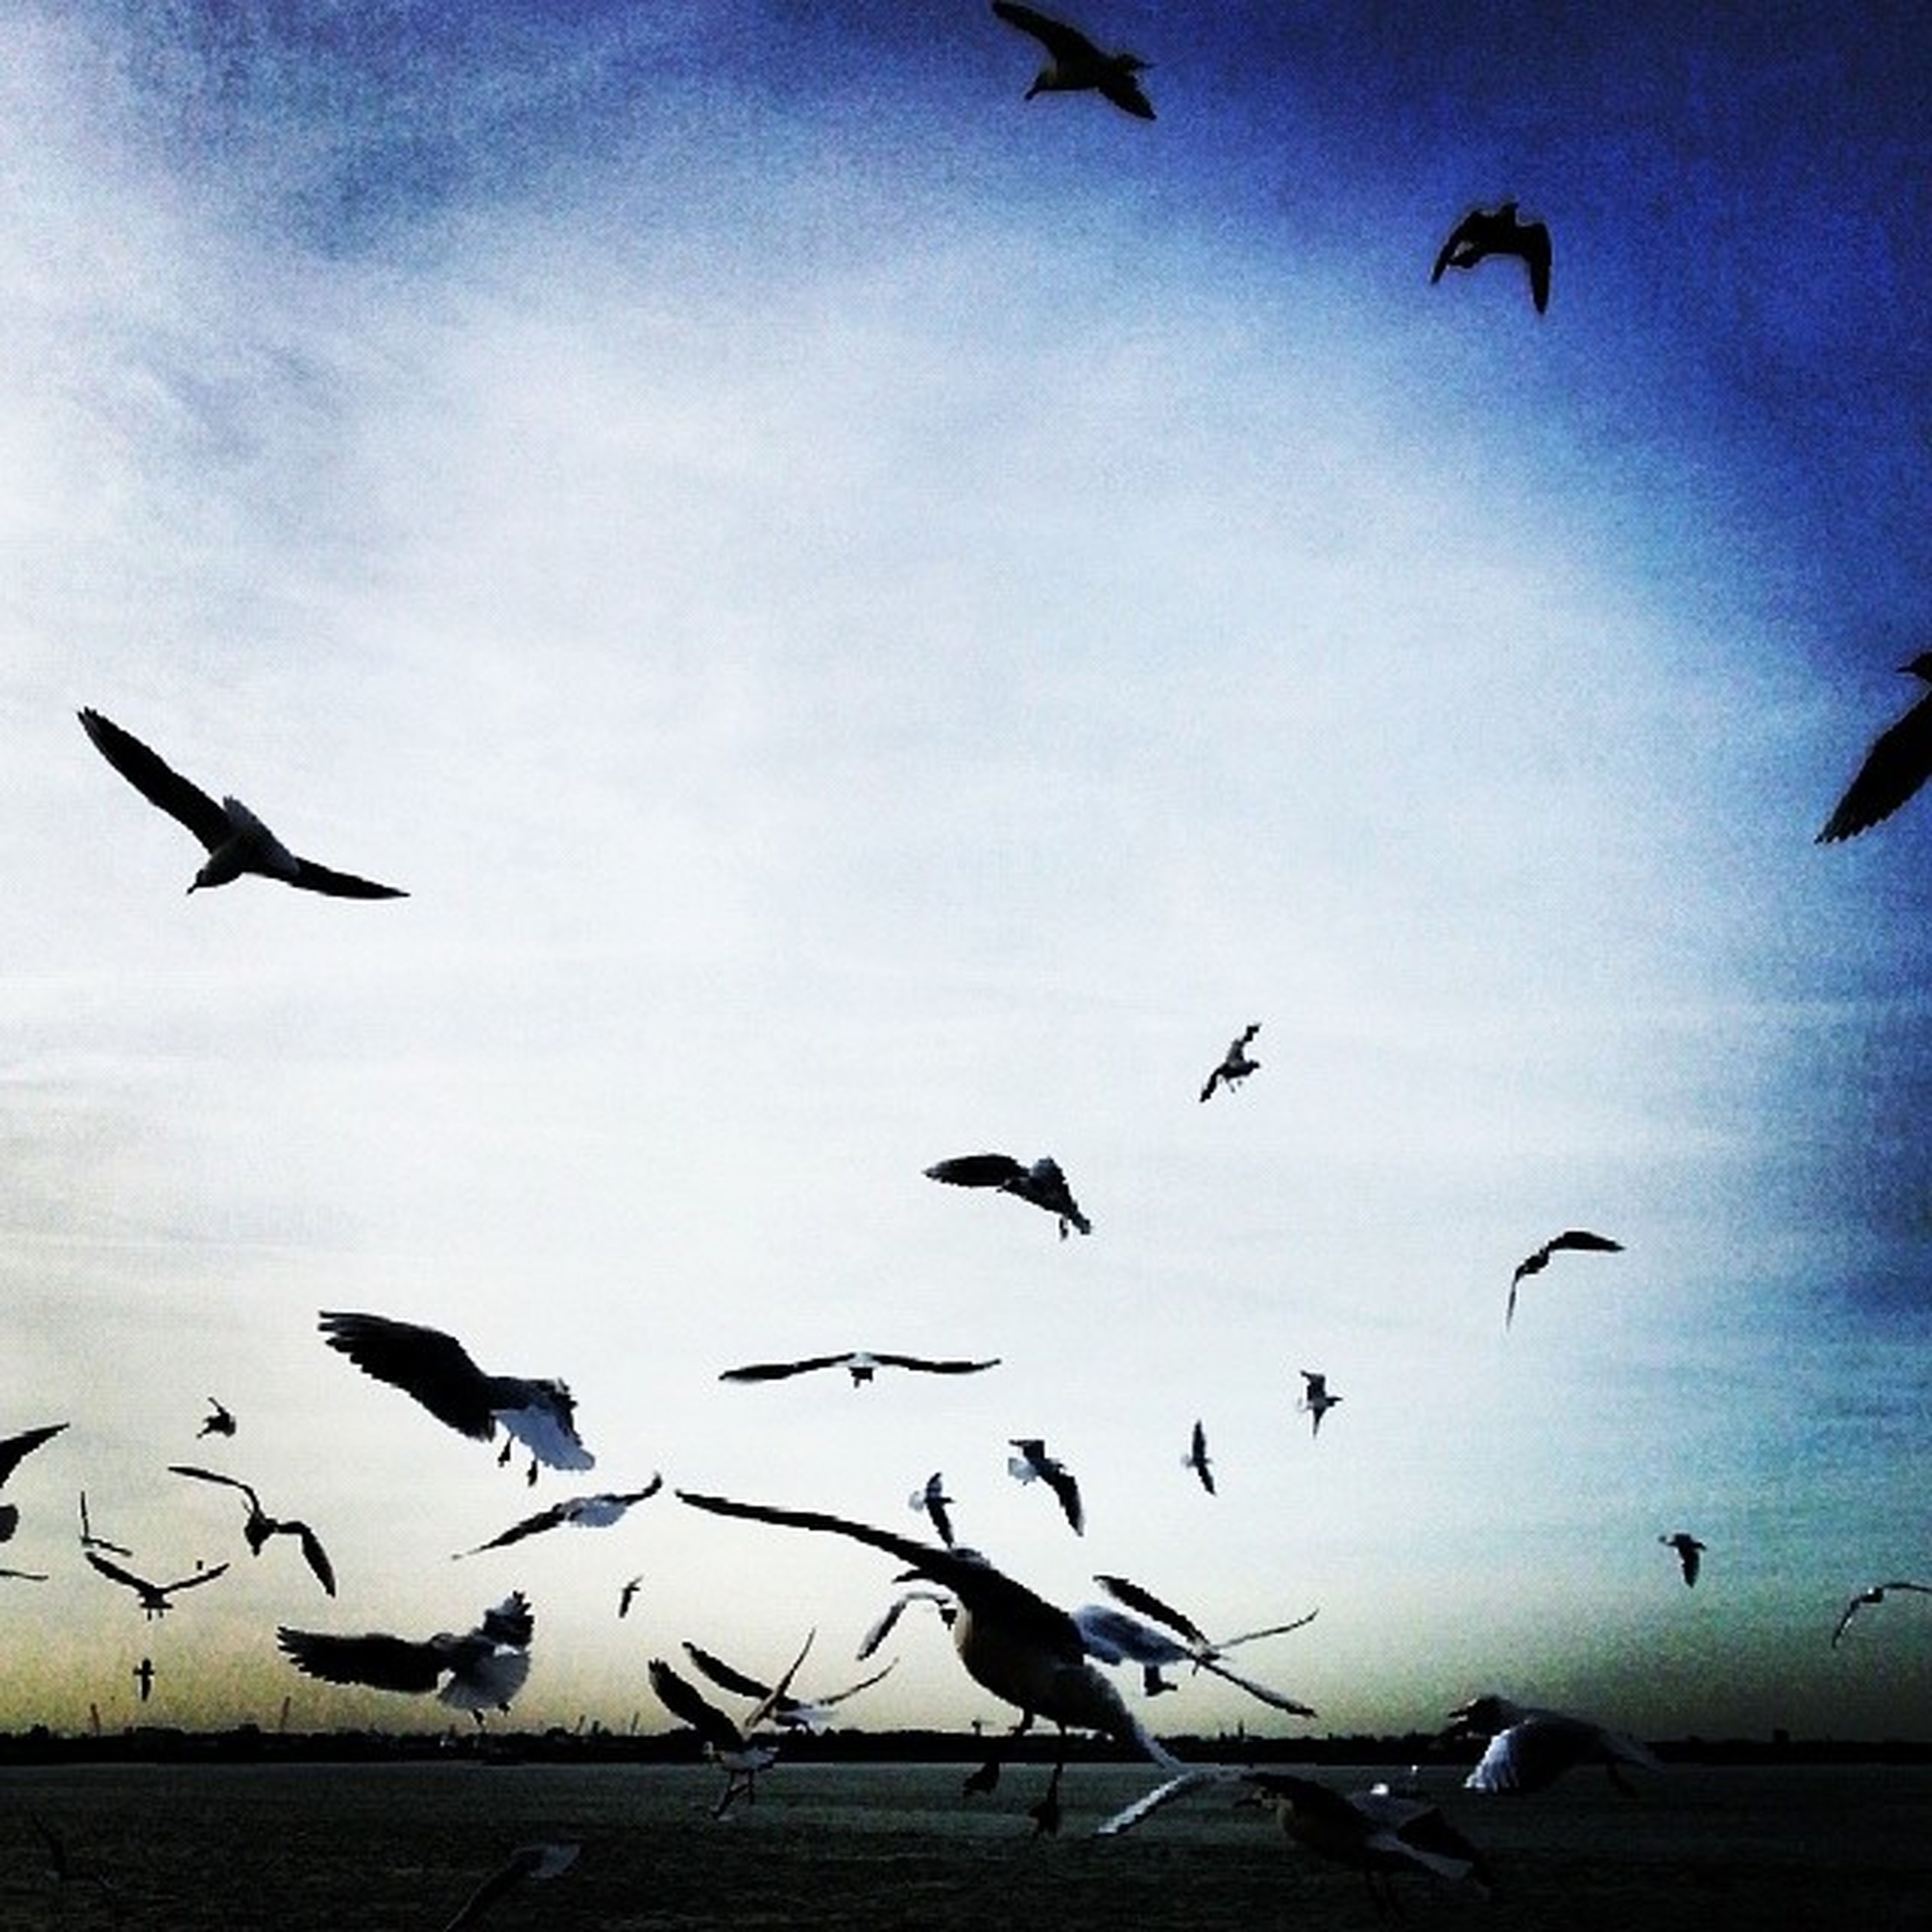 bird, flying, animal themes, animals in the wild, wildlife, flock of birds, mid-air, spread wings, sky, low angle view, seagull, medium group of animals, cloud - sky, nature, silhouette, motion, outdoors, beauty in nature, no people